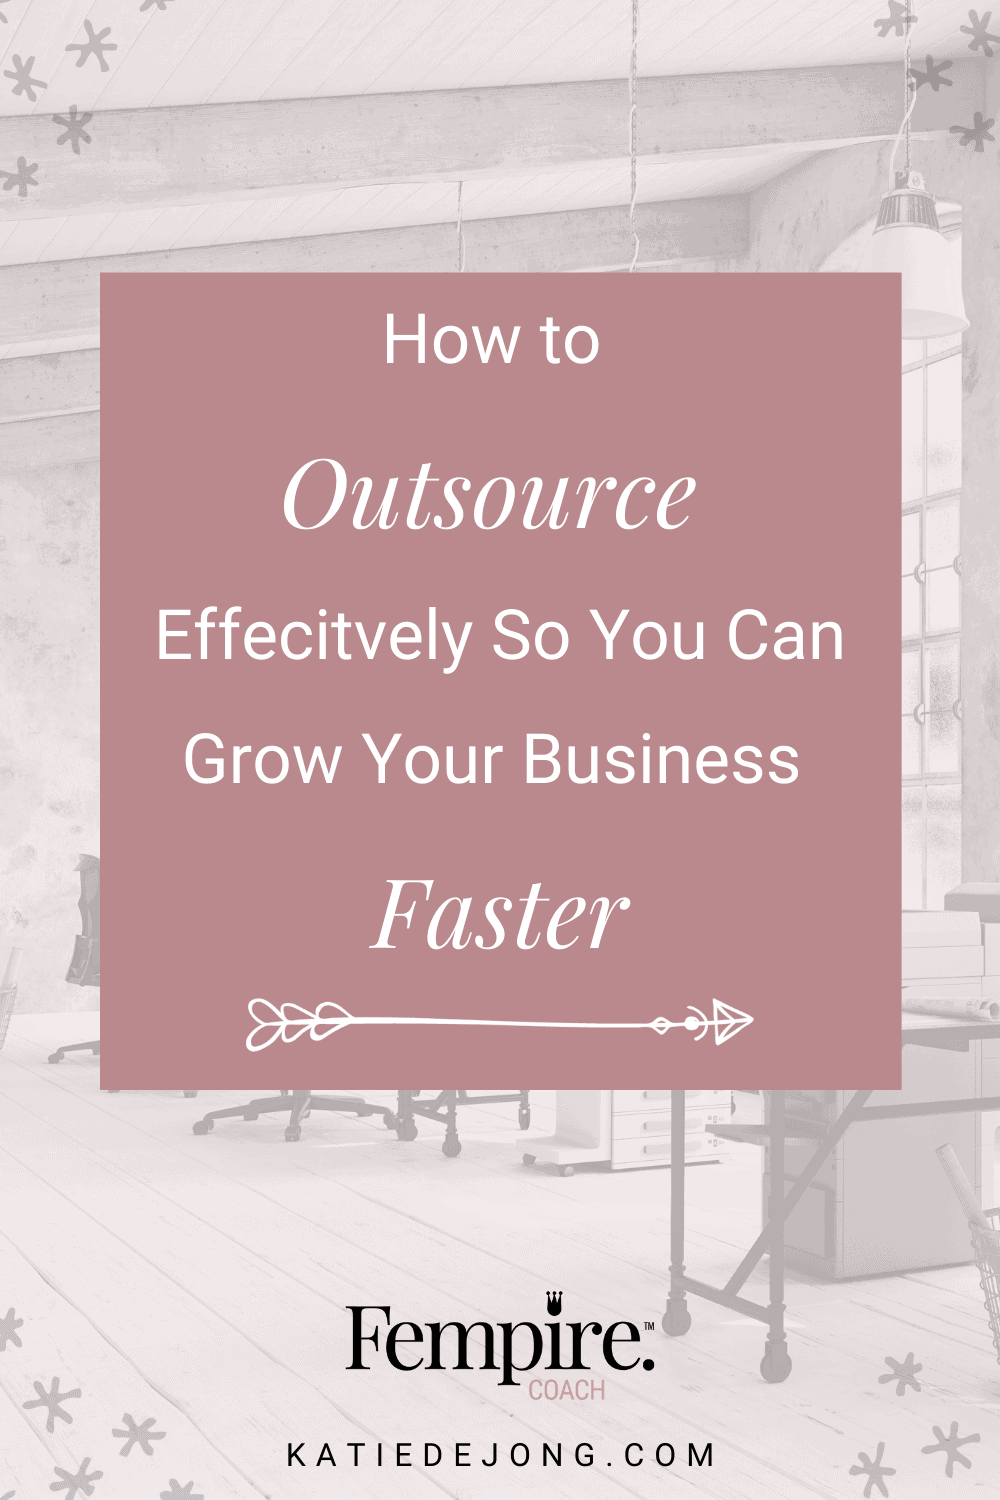 In small business, you eventually get to a point where you realise you can't do everything yourself. Discover how to start outsourcing to break through to greater levels of profit and freedom in your business. #outsourcing #virtualassistant #marketing #fempire #smallbusiness #businesscoach #businesscoachforwomen #entrepreneur #womensupportingwomen